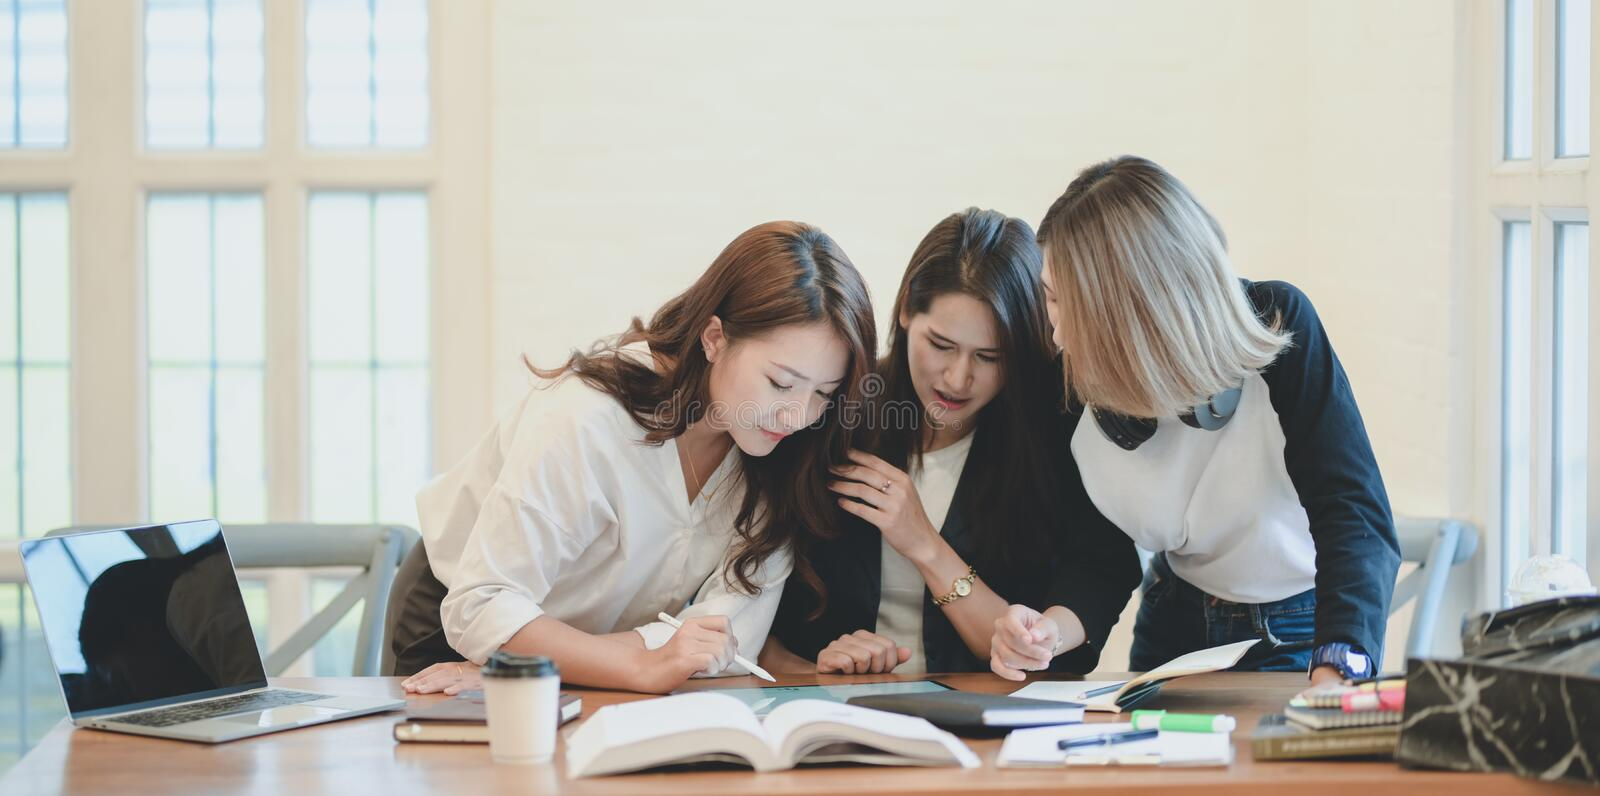 Professional startup team brainstorming the plan together with positive attitude. In modern office room stock photos